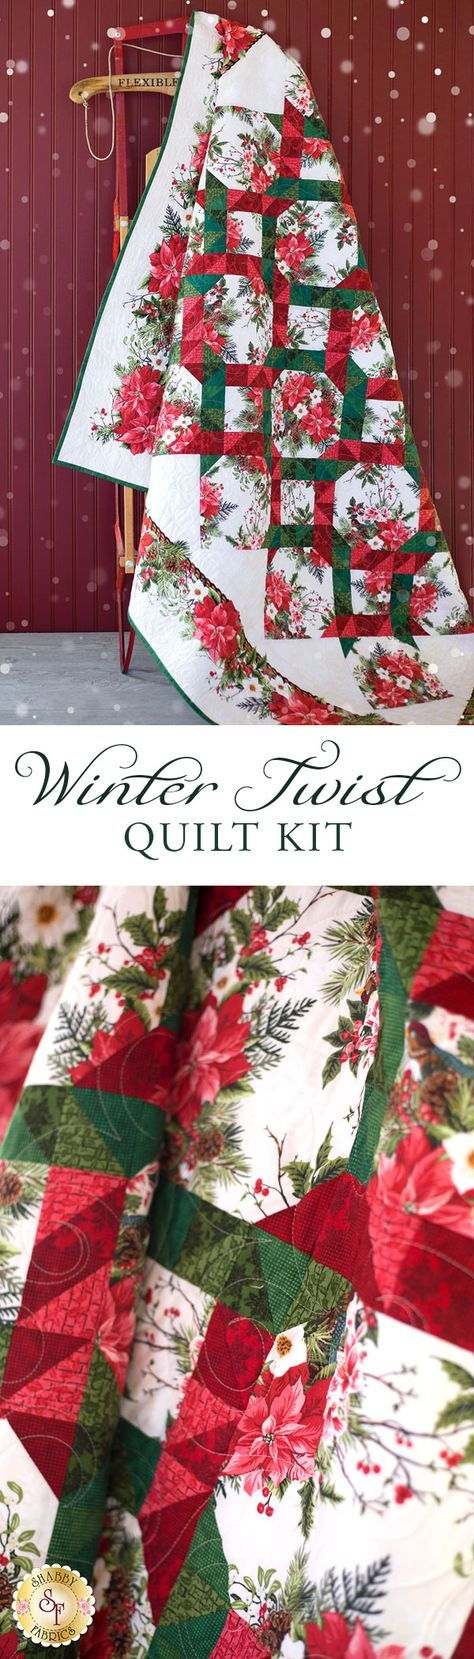 """Winter Twist Quilt Kit Bring the spirit of the season and all its splendor to your home with the Winter Twist Quilt! This gorgeous pieced quilt features the rich reds of poinsettias intertwined with deep shades of evergreen for a dynamic, eye-catching look! Quilt finishes to approximately 64"""" x 75"""". A beautiful coordinating Table Runner Kit and Winter Twist Kaleidoscope Quilt Kit are also available!"""